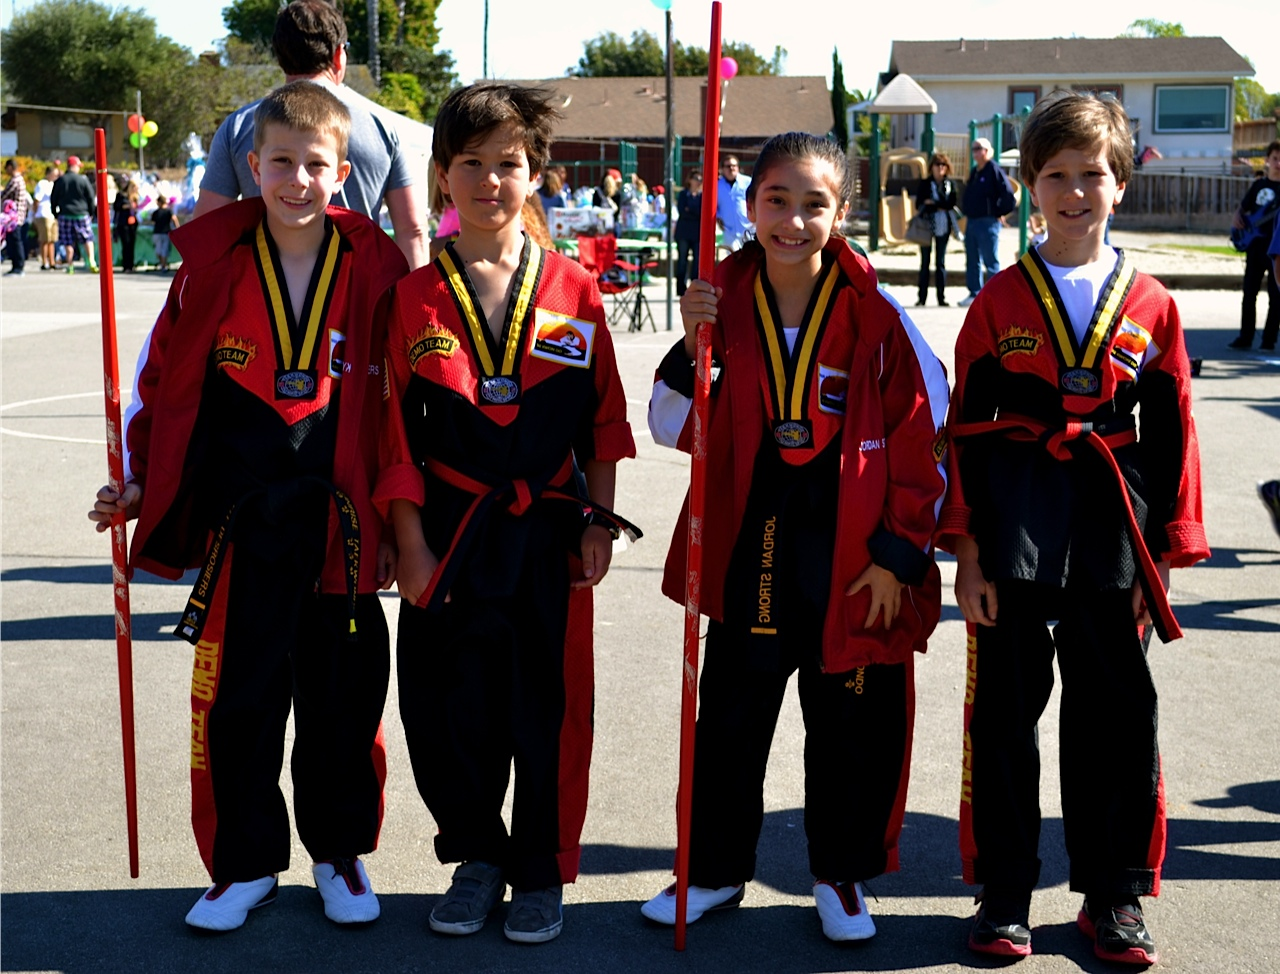 Kyle, Max, Jordan and Spencer from Sunrise Tai Kwon Do stop for a photo after their martial arts demonstrations. Photo by Madison May